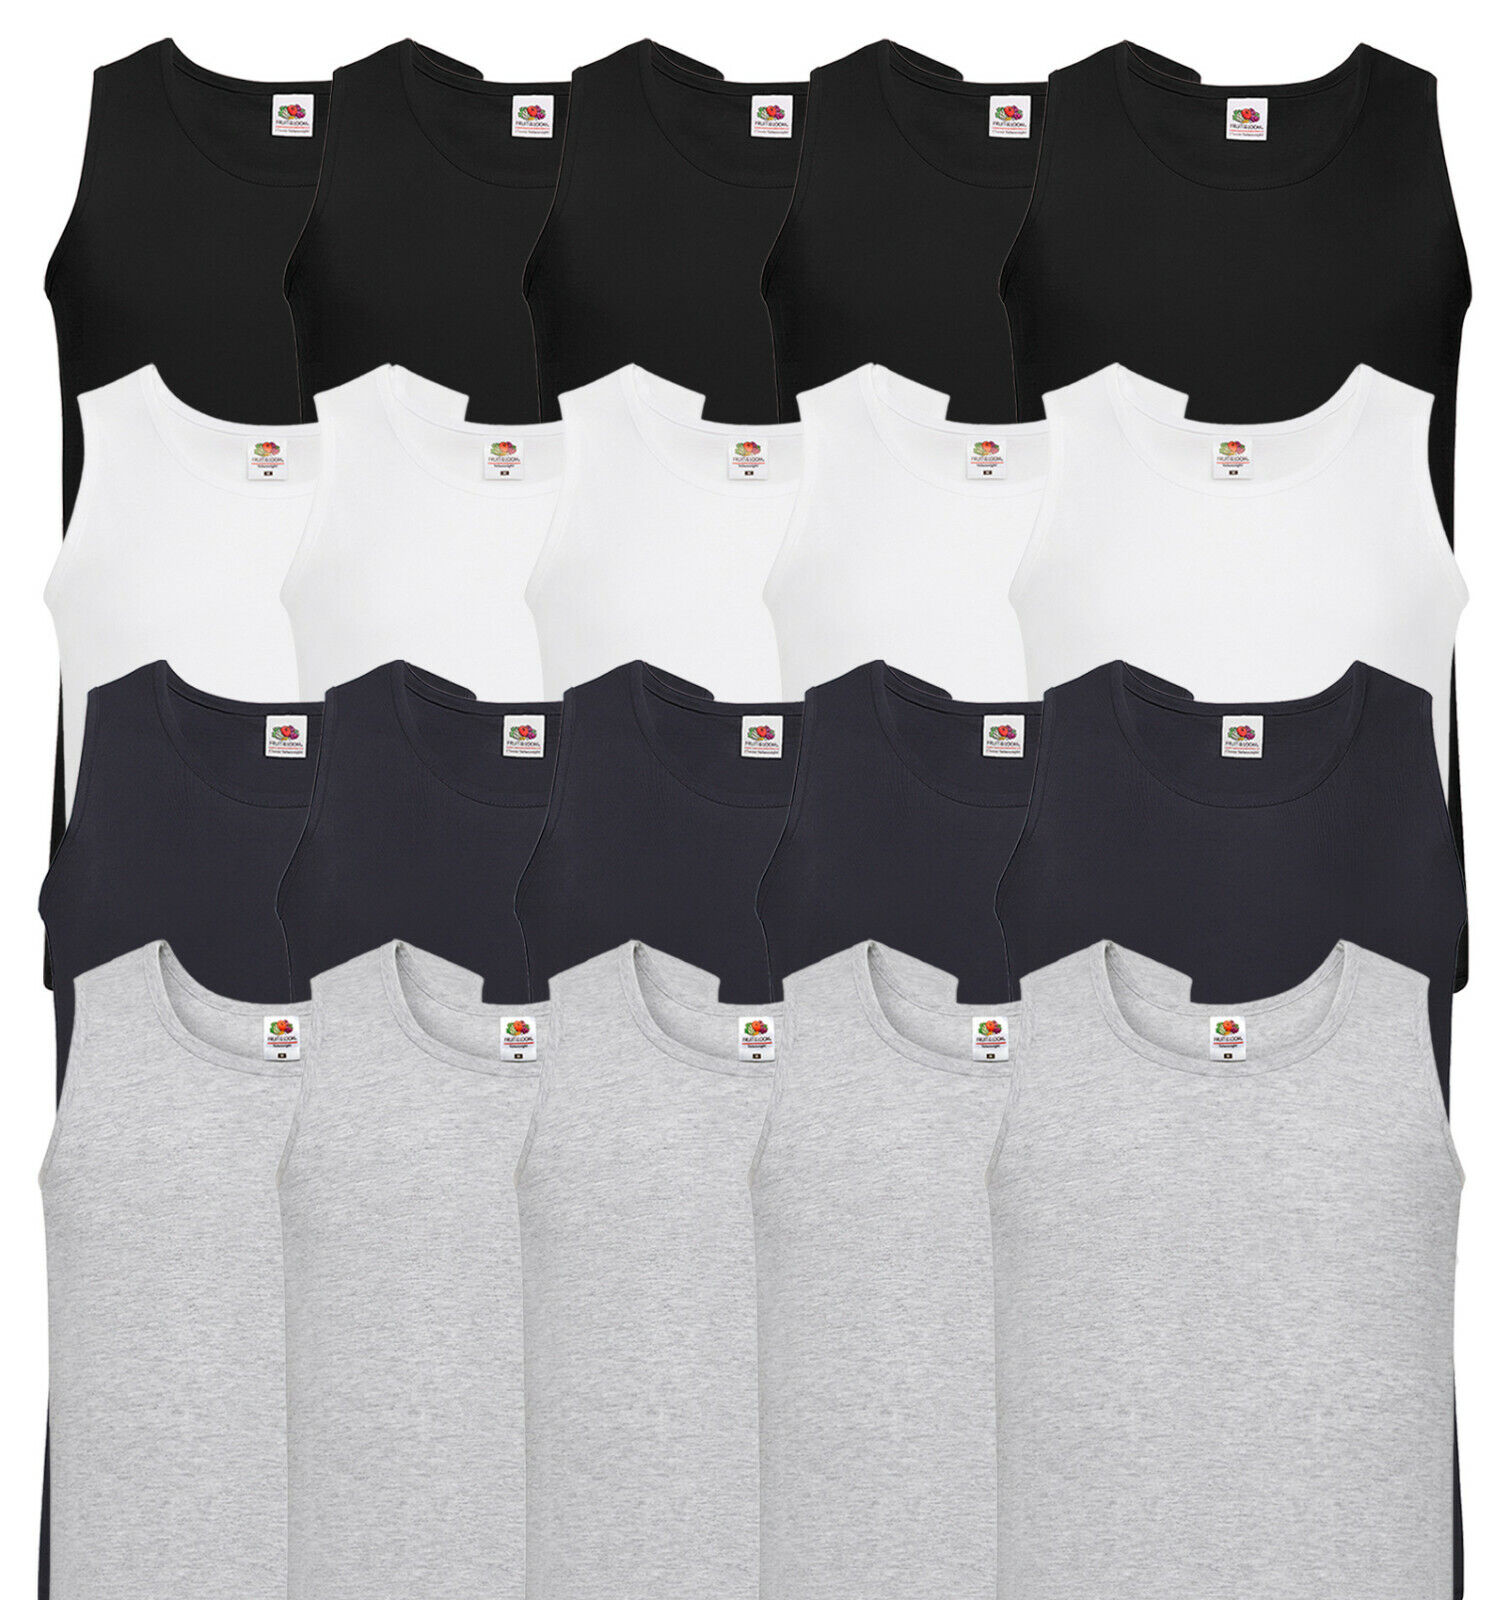 5er FRUIT OF THE LOOM HERREN MUSKELSHIRT UNTERHEMD TSHIRT TANK TOP -S M L XL XXL